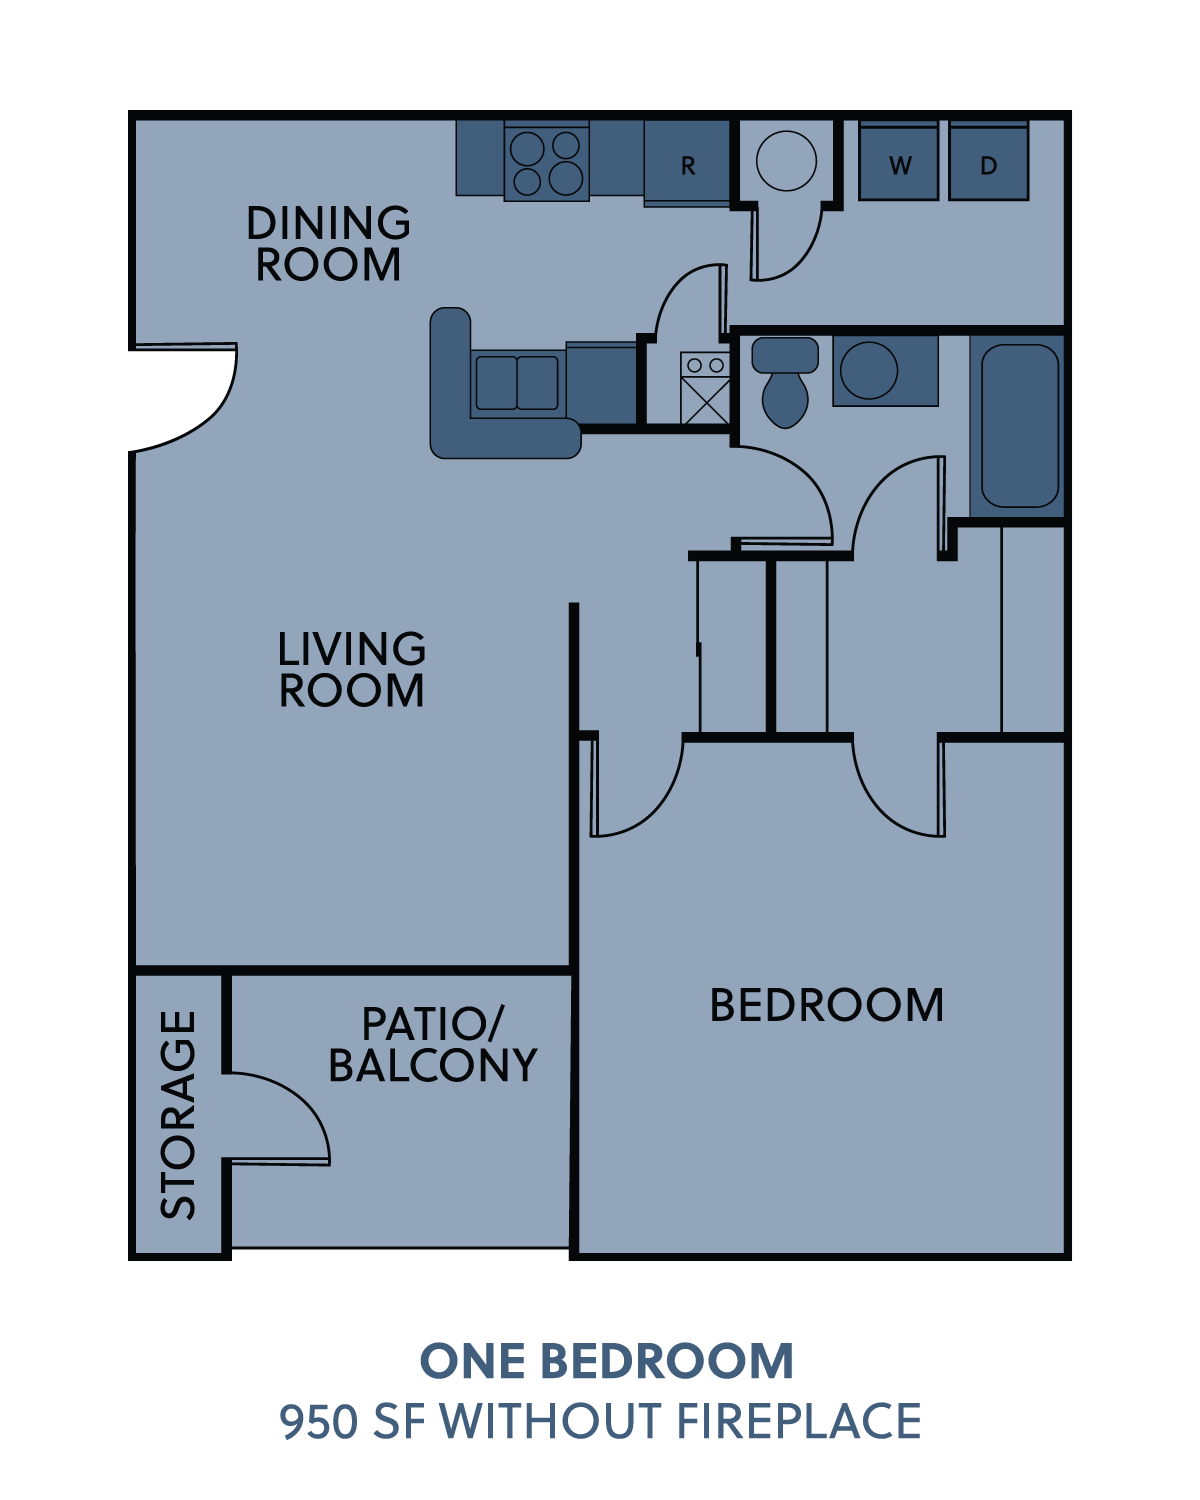 1 bedroom without fireplace